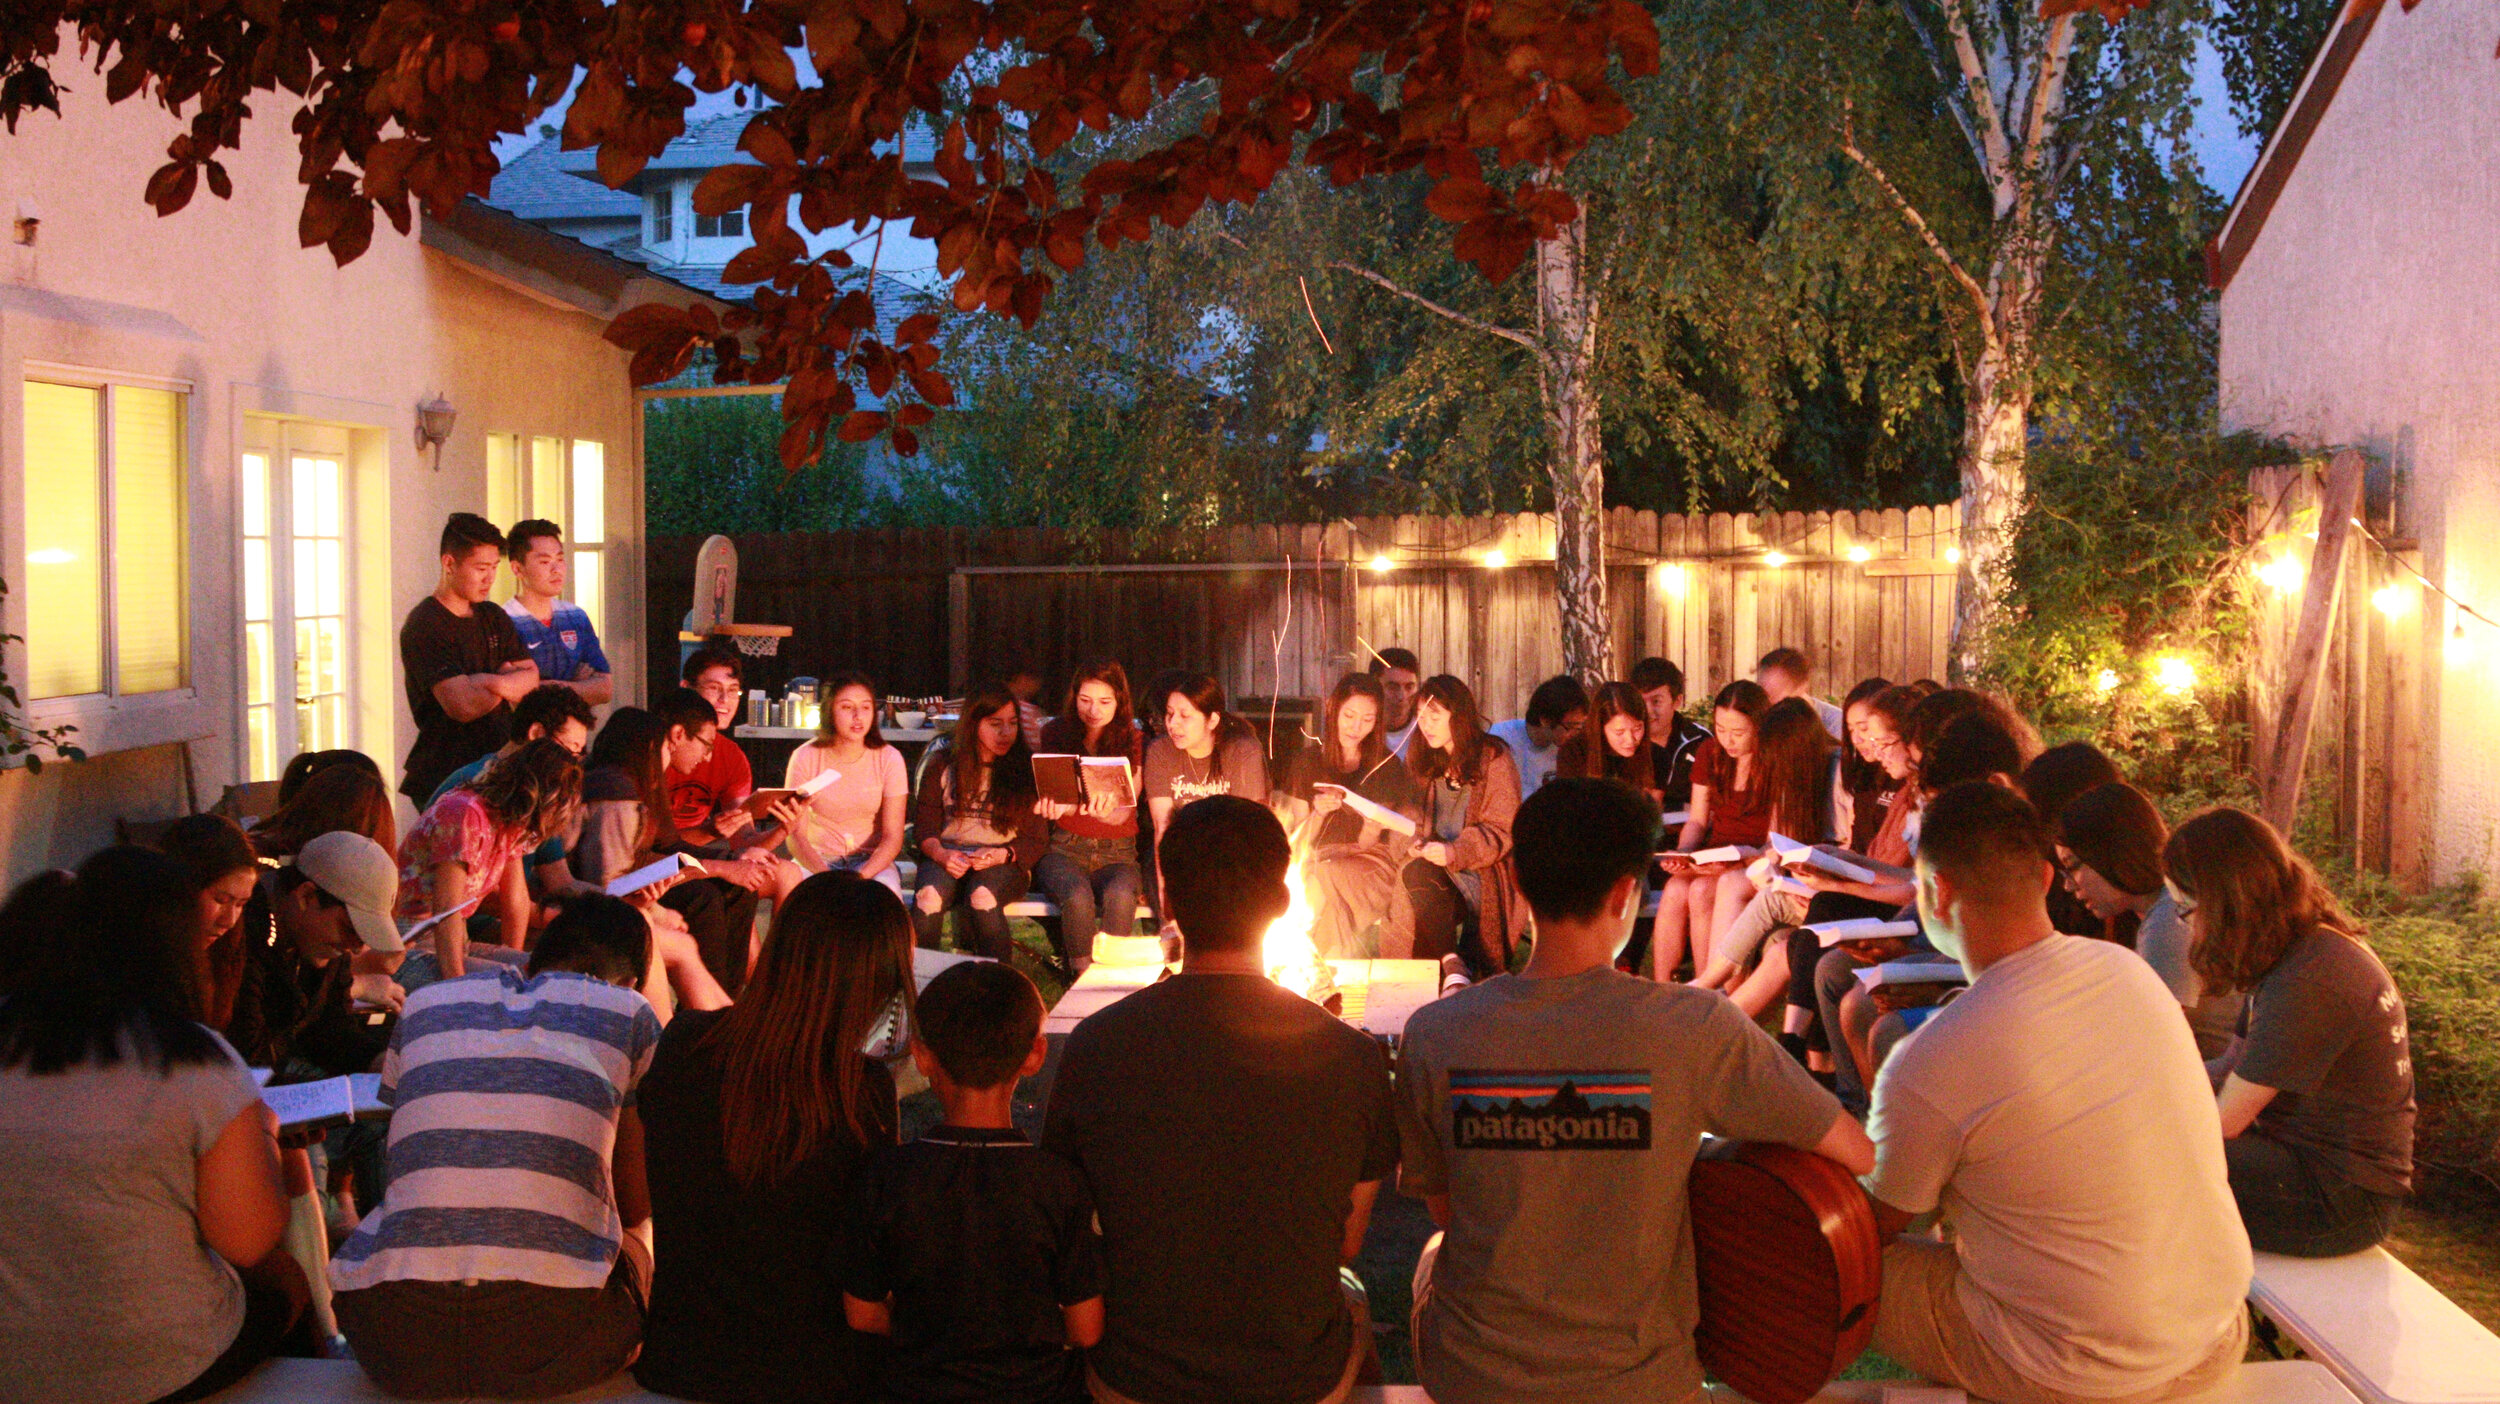 Frosh Discipleship : A place where we can meet like minded peers and deepen our relationship with God.